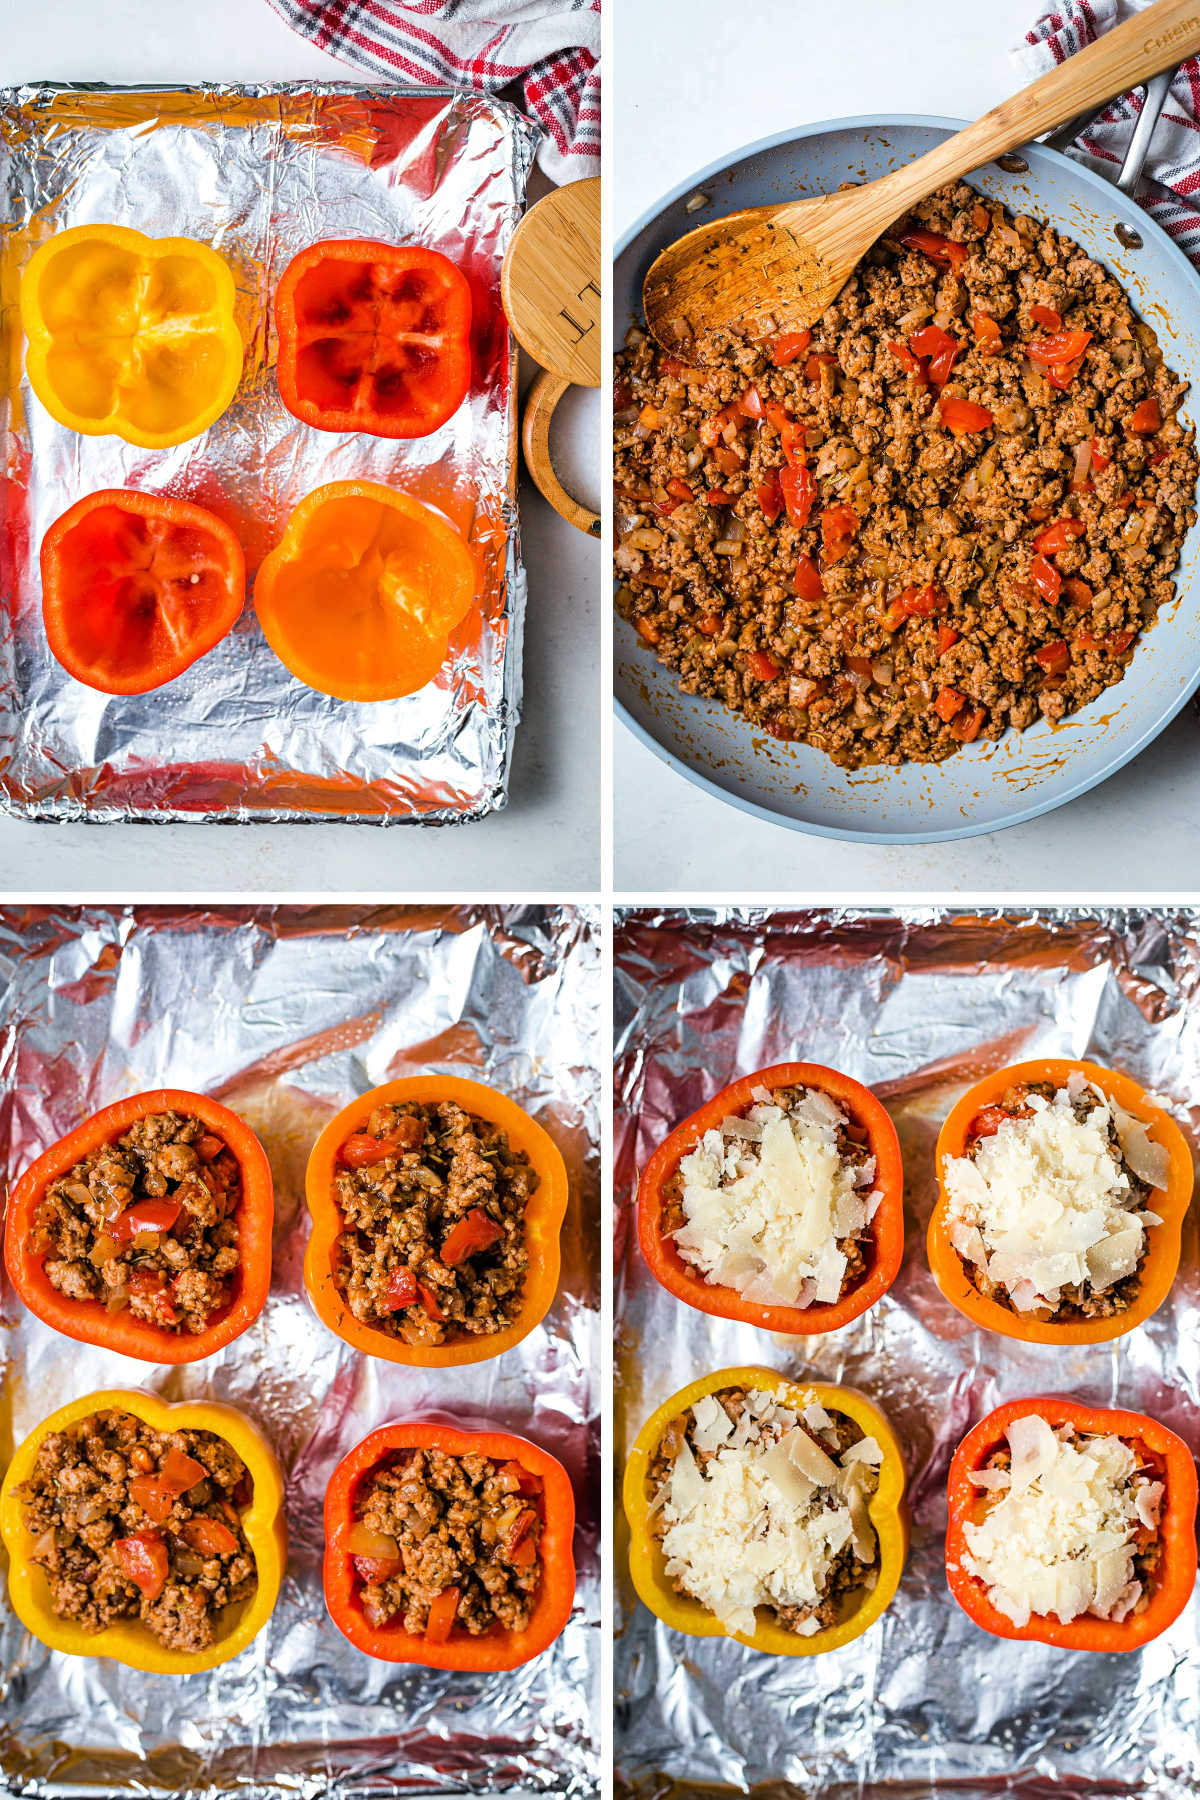 process steps for preparing saucy turkey stuffed peppers: pre-bake peppers; season cooked ground turkey; fill peppers with turkey mixture; top with shaved parmesan cheese.